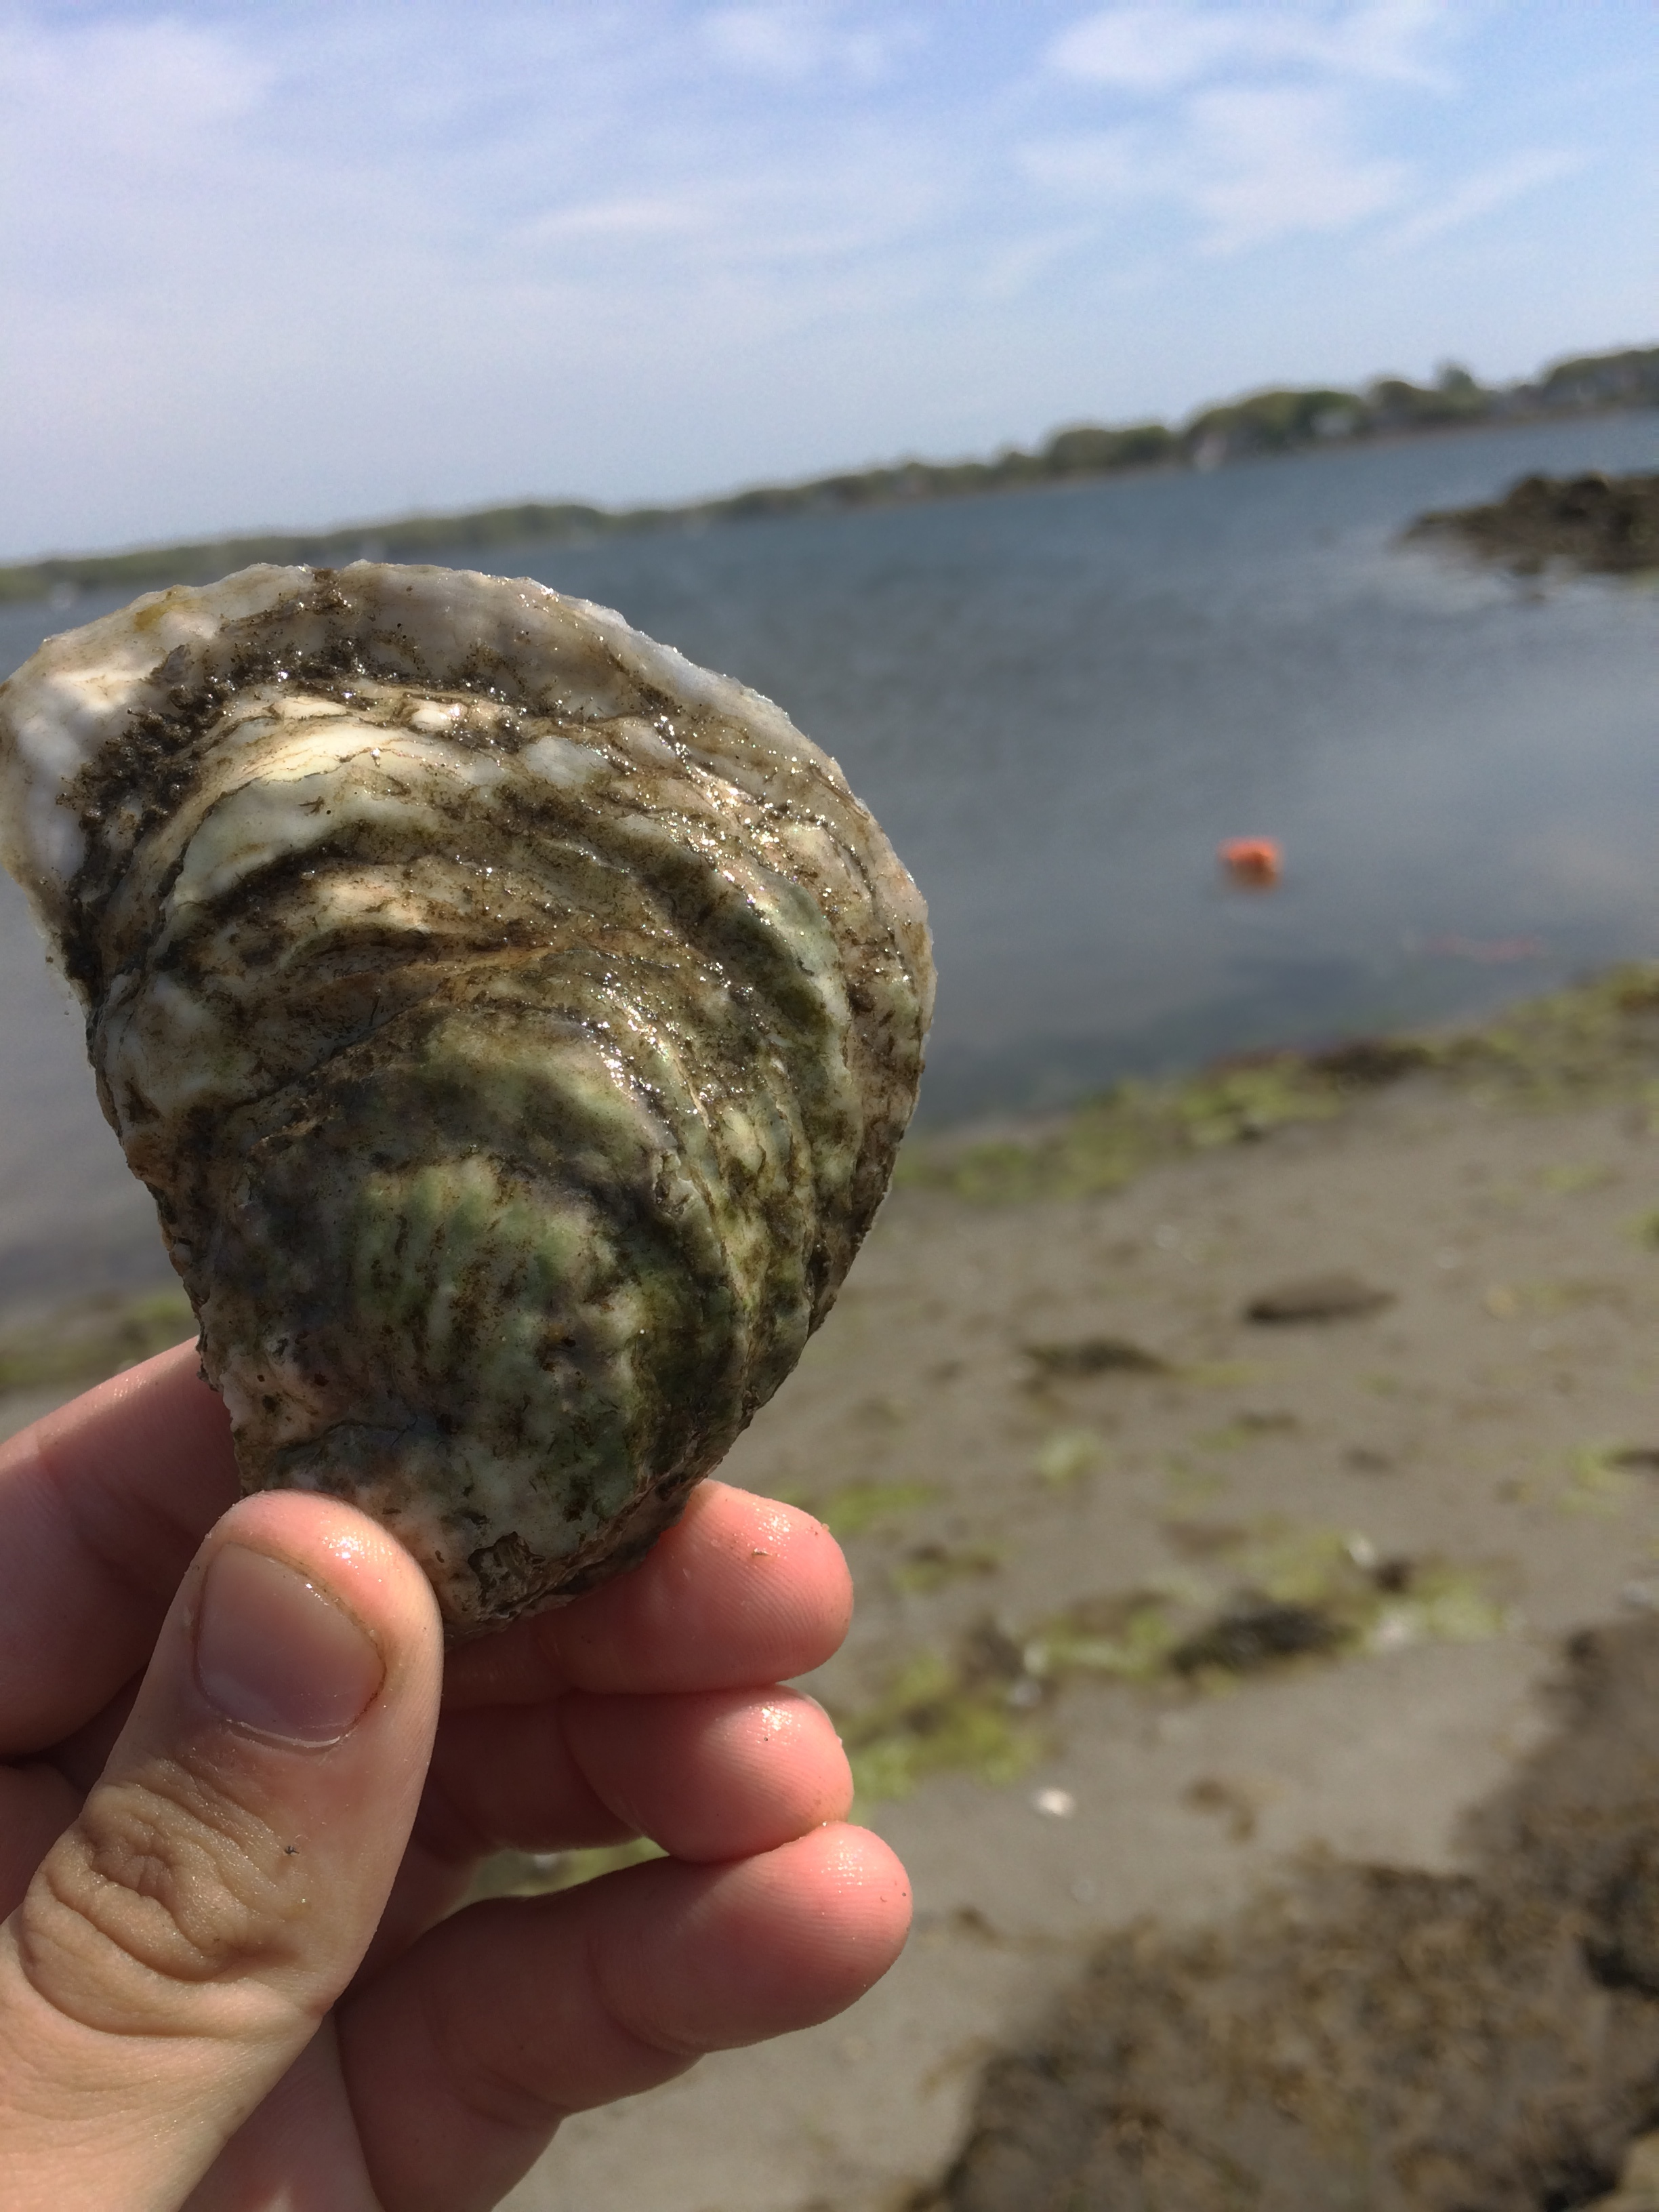 Stashed a few test oysters to see how they would fare. After 2 weeks the oyster had some notable growth (the white edge on the top is all new shell).